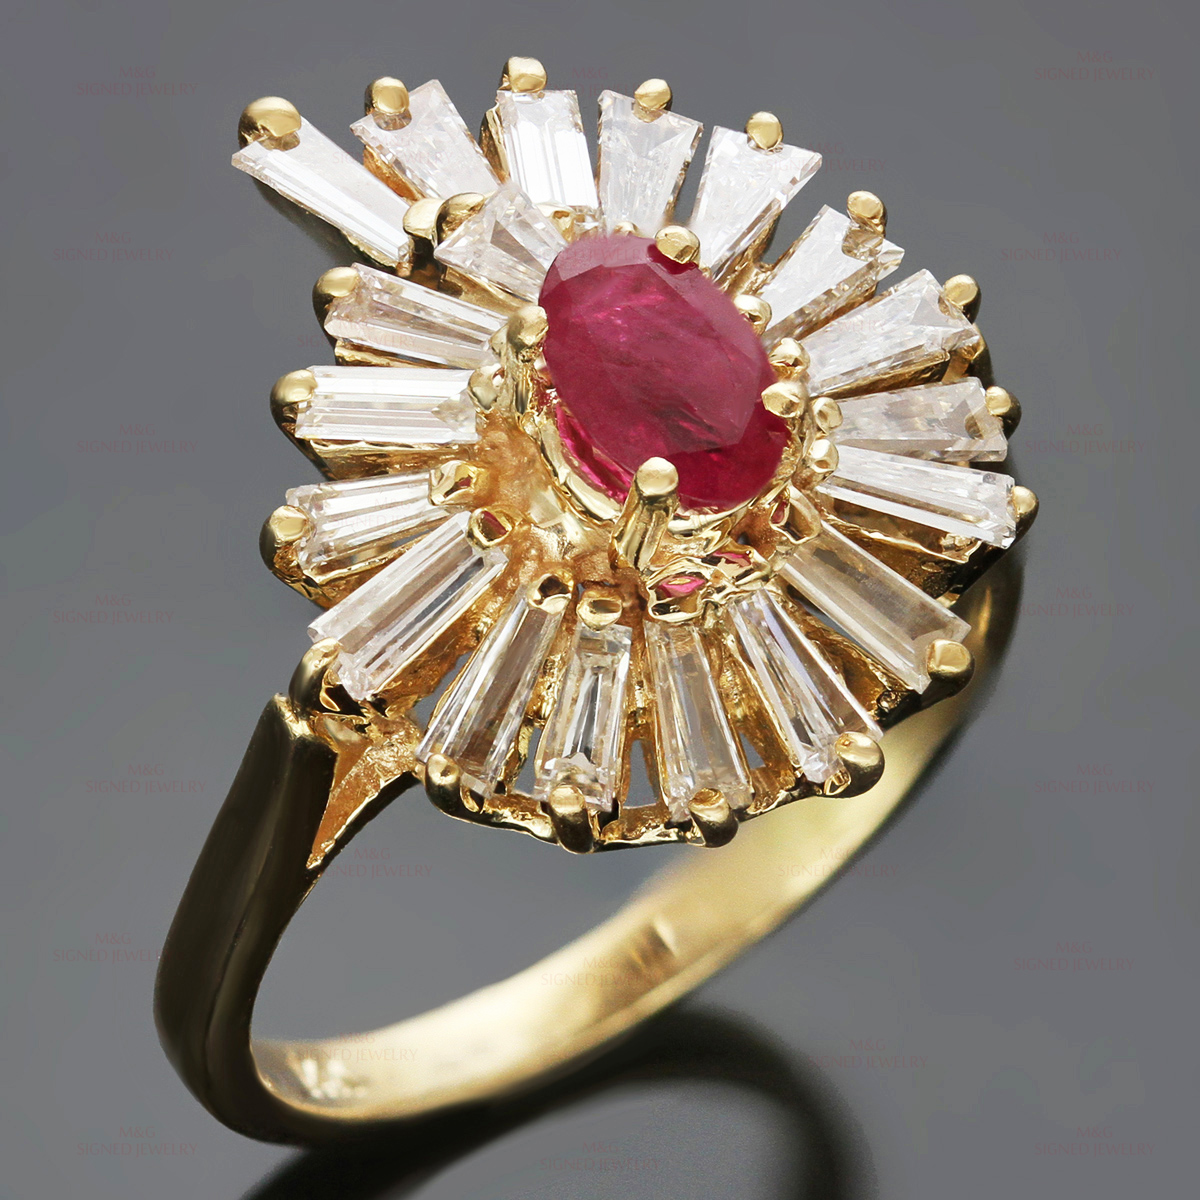 BALLERINA Ruby 14k Gold Baguette Diamond Cocktail Ring